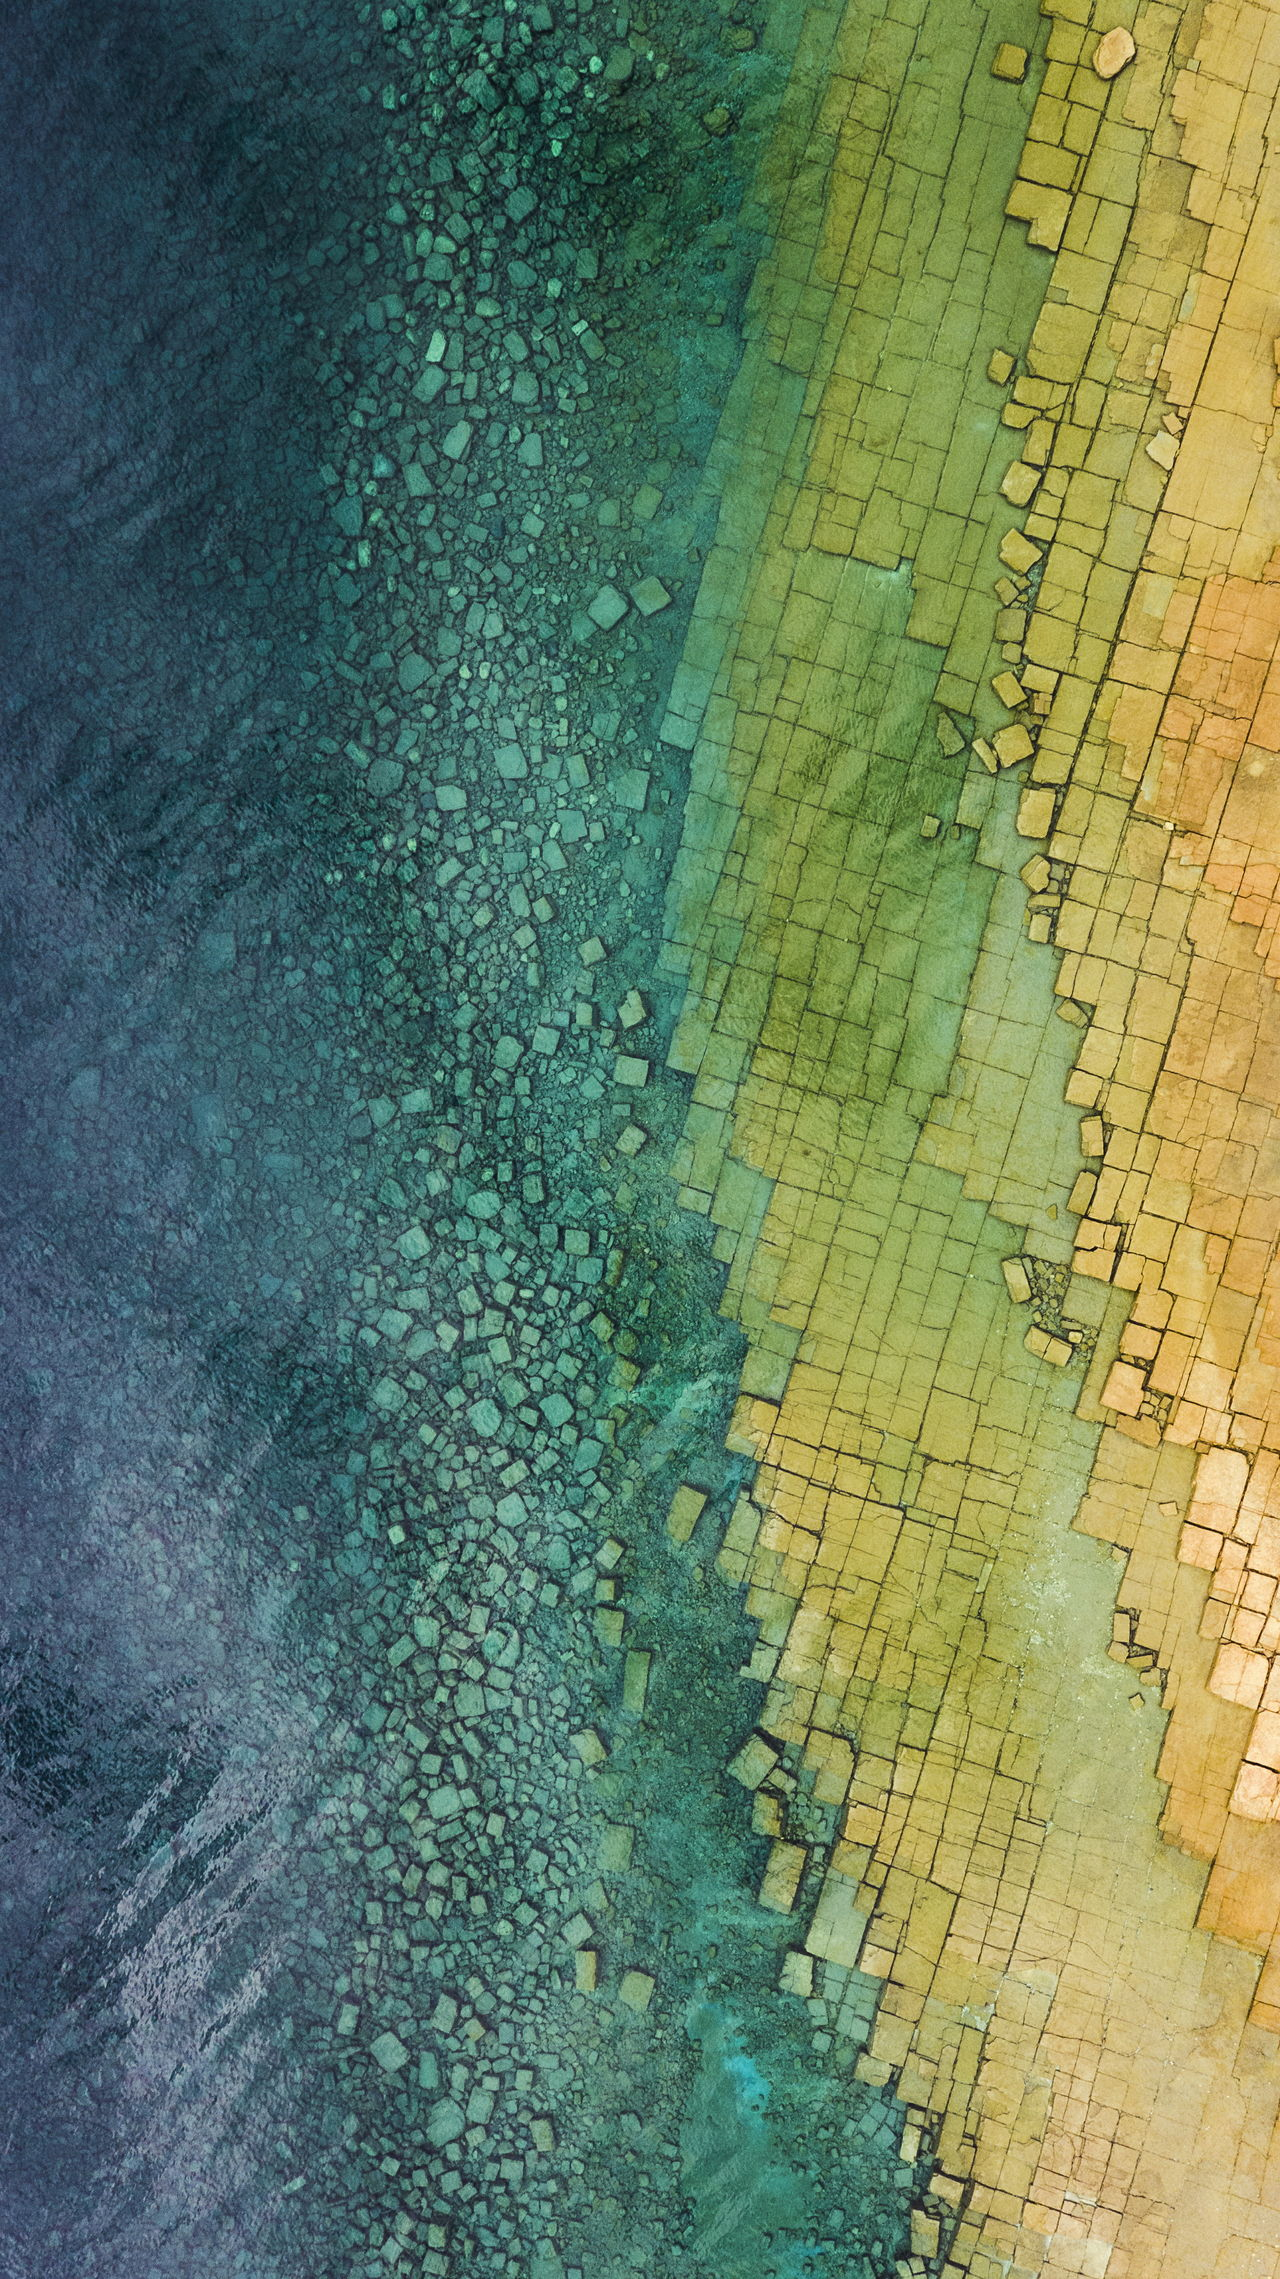 Aerial Crystal Blue Shoreline Great Lakes Huron Water_collection Drone  Green Color Beach Aerial View Outdoors Water Sea Geology Stone Square Rock Multi Colored Pattern Landscape Textured  Clear Scenics Tranquility The Great Outdoors - 2017 EyeEm Awards